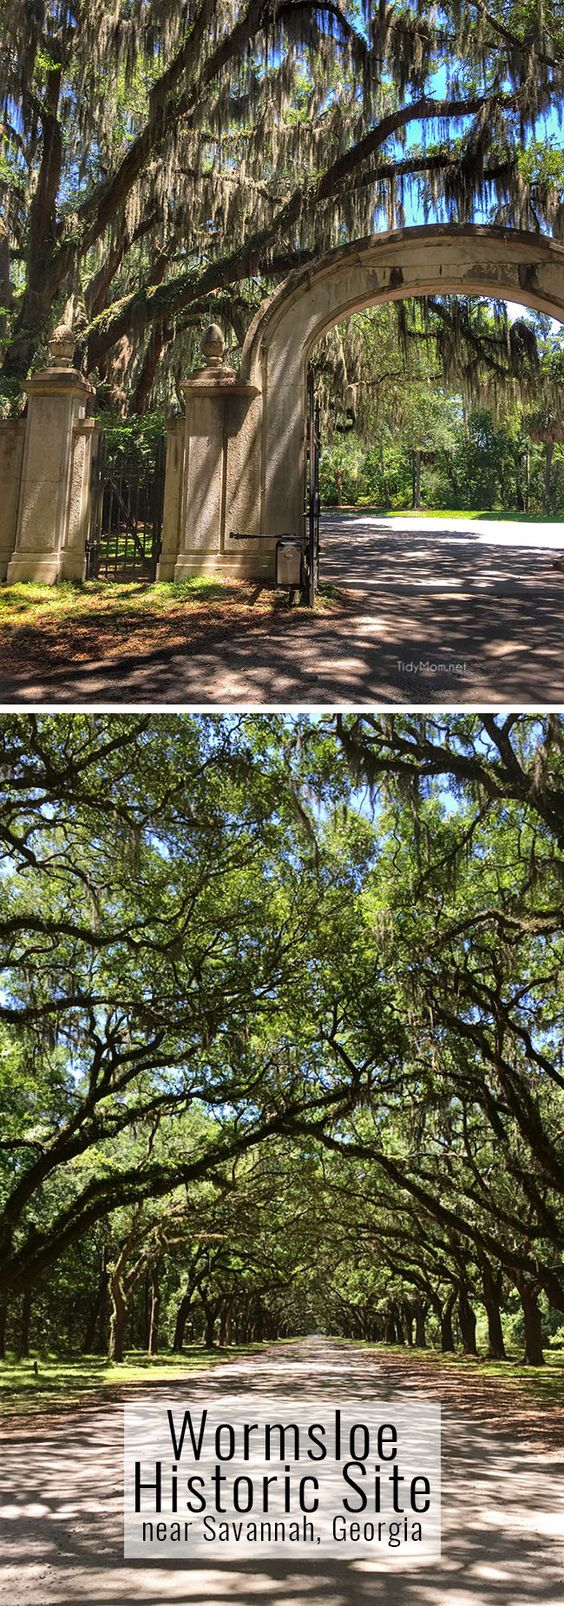 Wormsloe Historic site near Savannah, Georgia. A breathtaking 1.5 mile avenue sheltered by live oaks and Spanish moss. More…